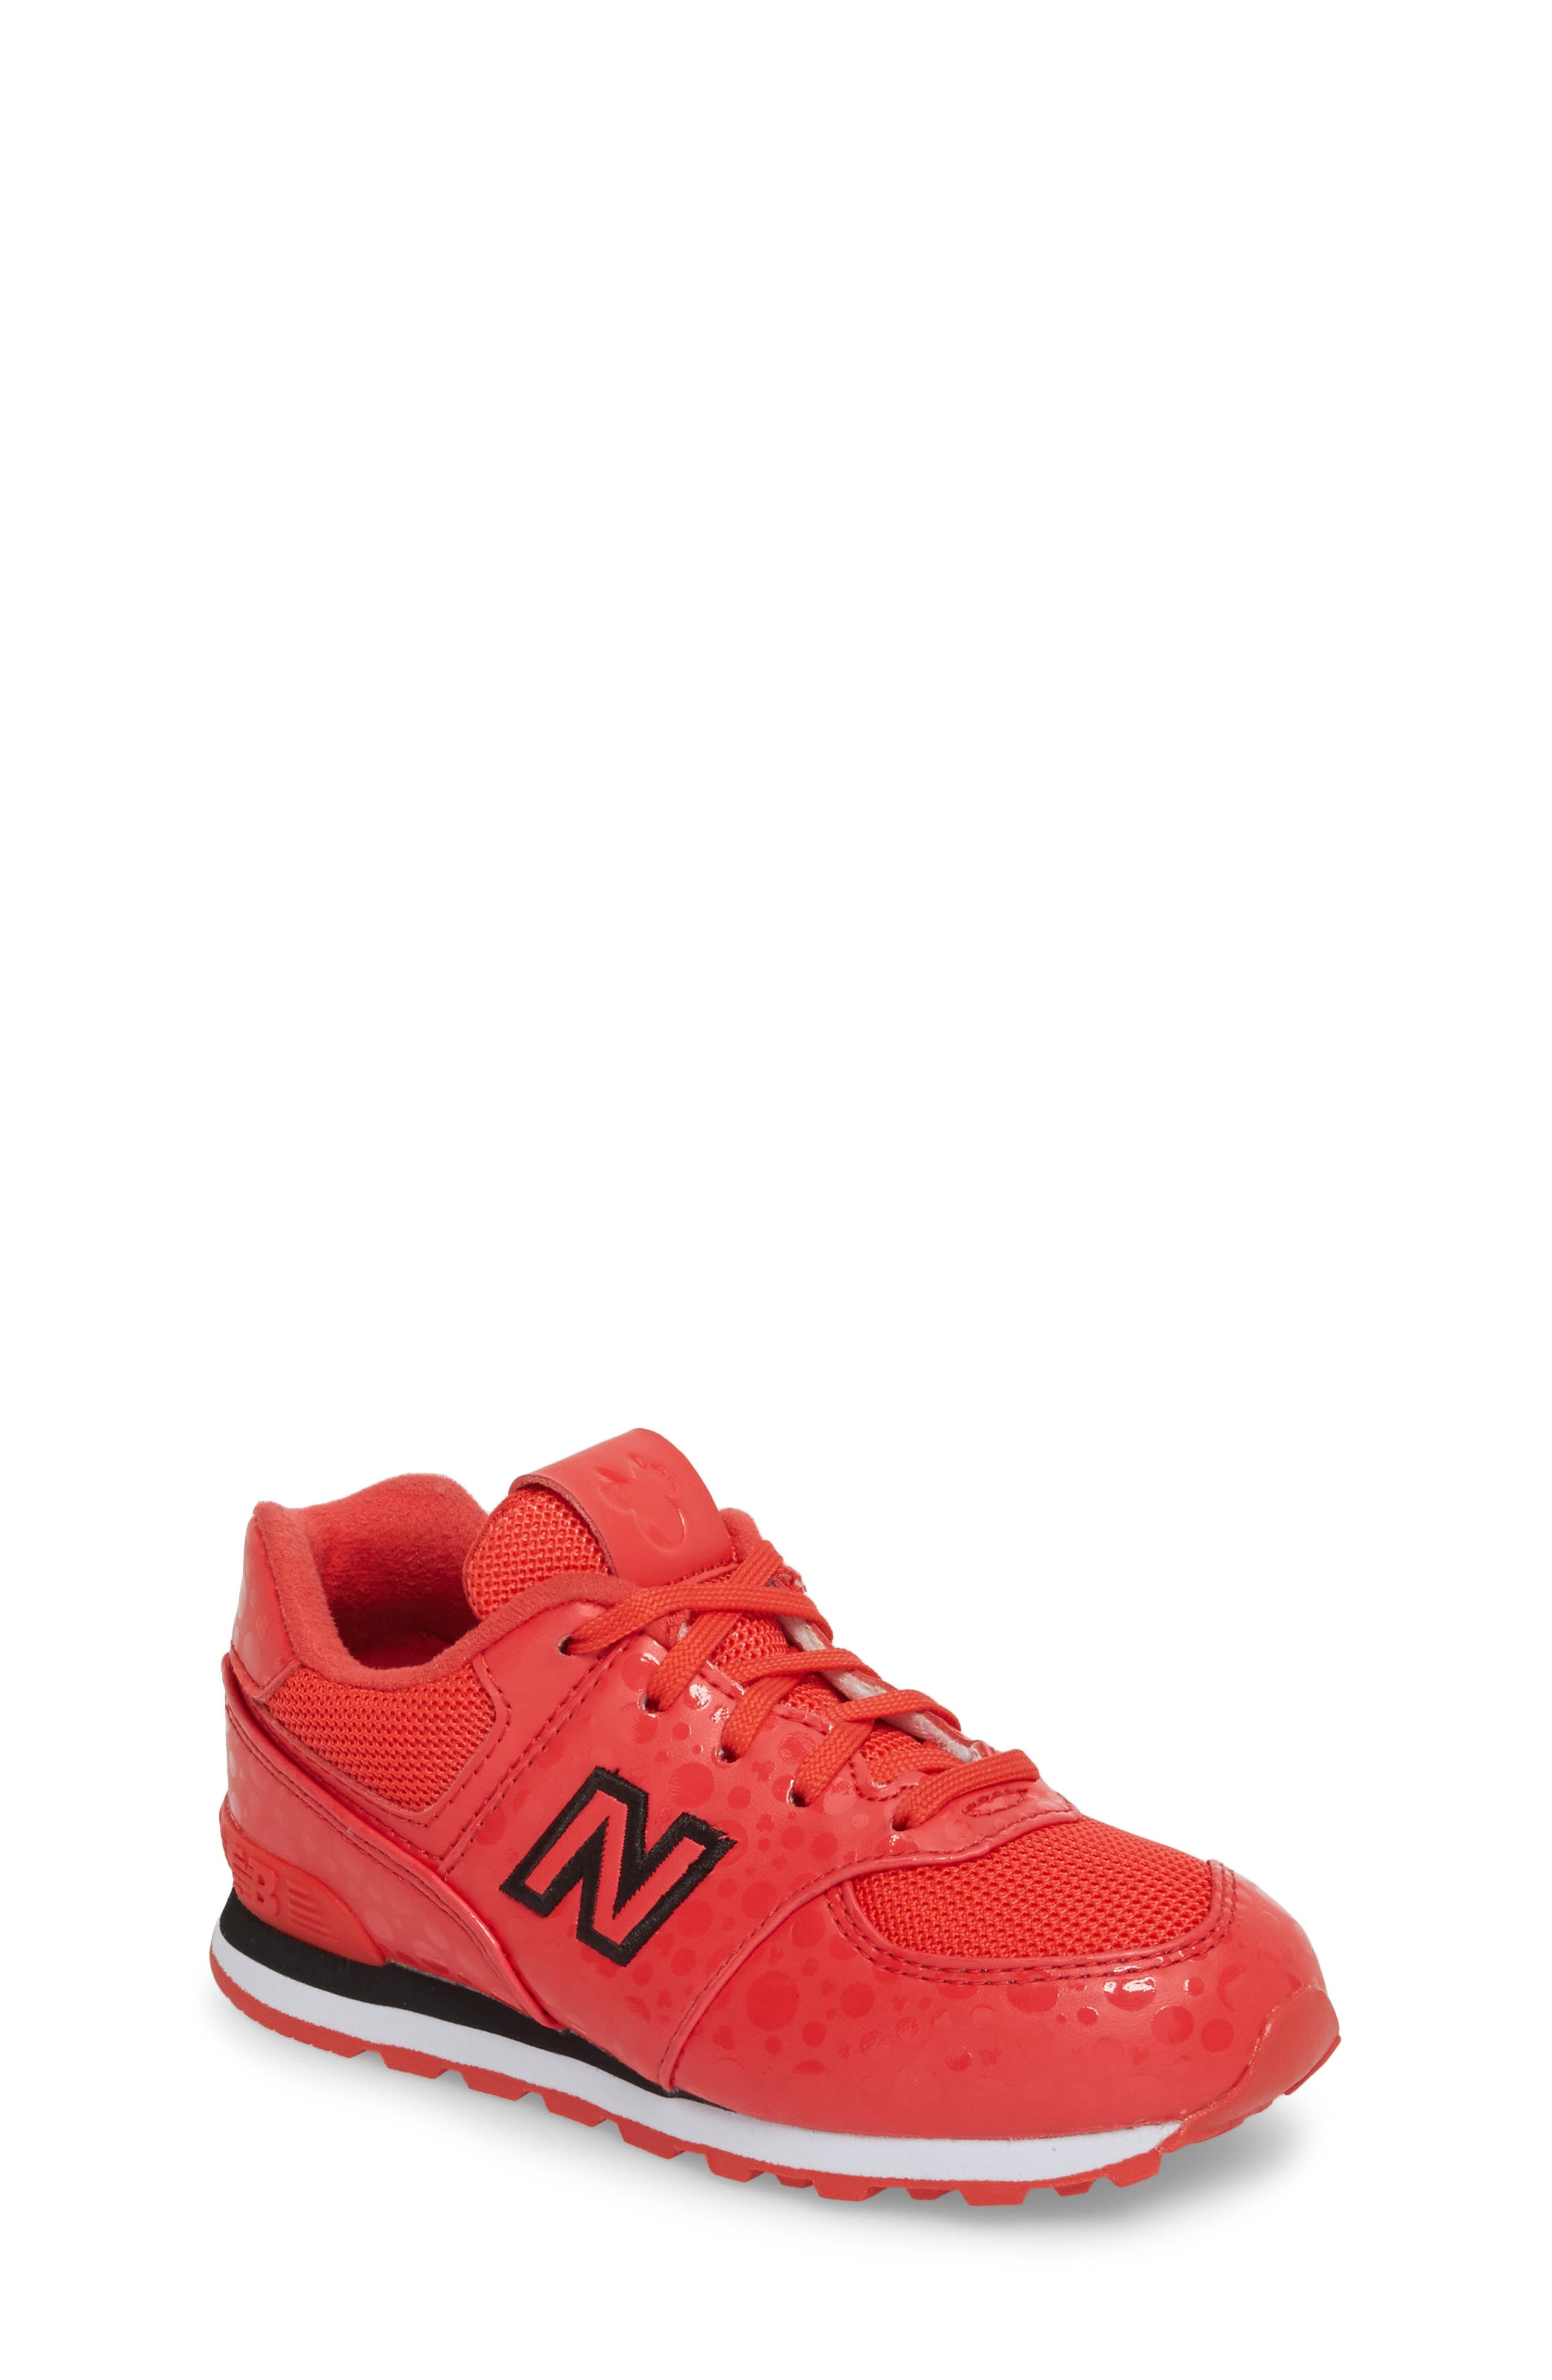 New Balance x Disney 574 Minnie Mouse Sneaker (Baby, Walker, Toddler, Little Kid & Big Kid)